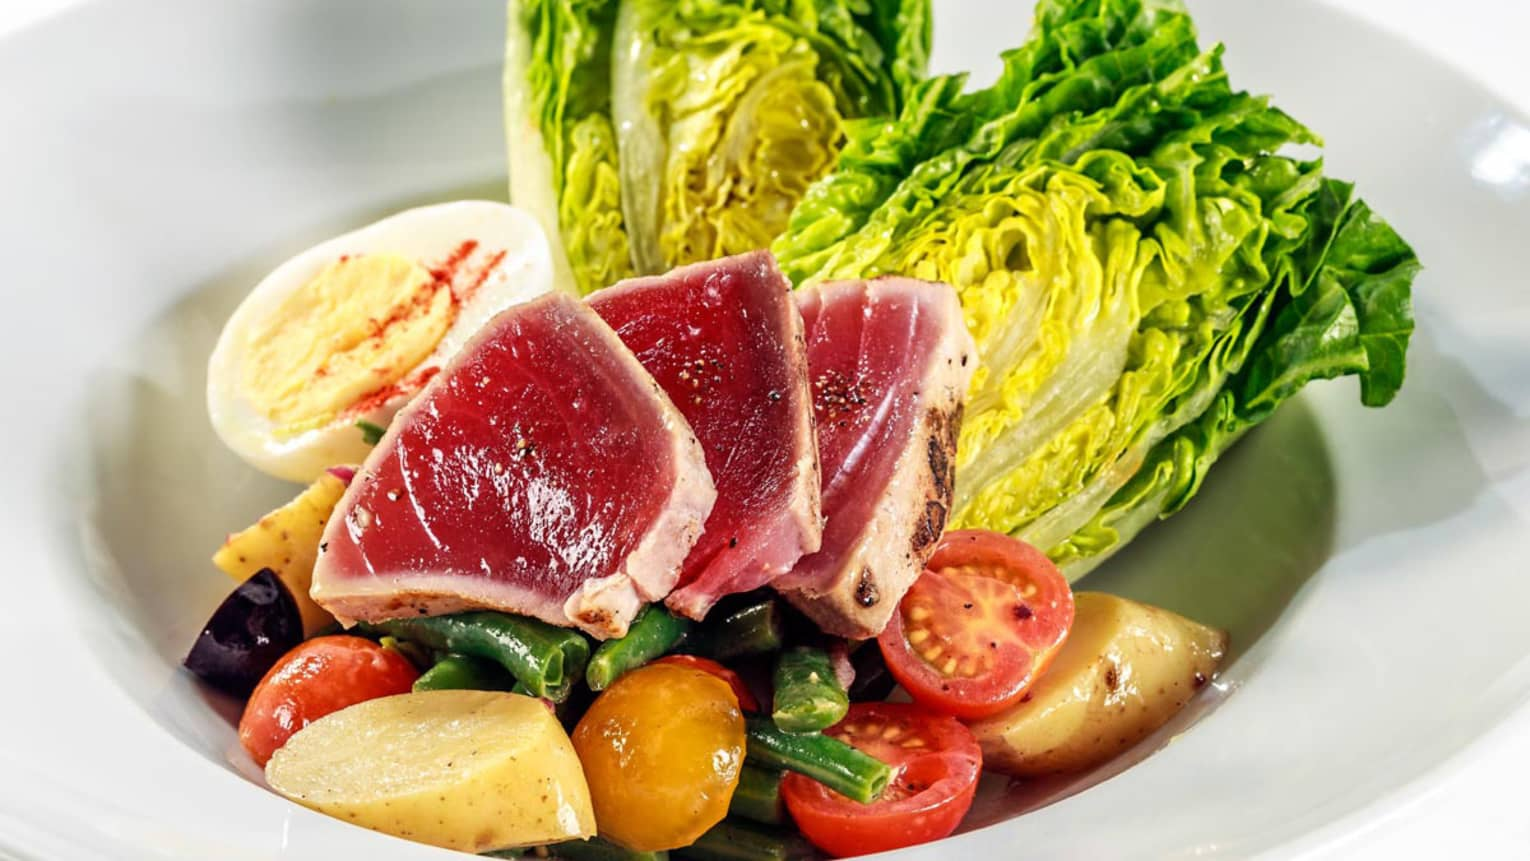 Slices of Seared Ahi-Tuna on boiled egg, vegetables, lettuce